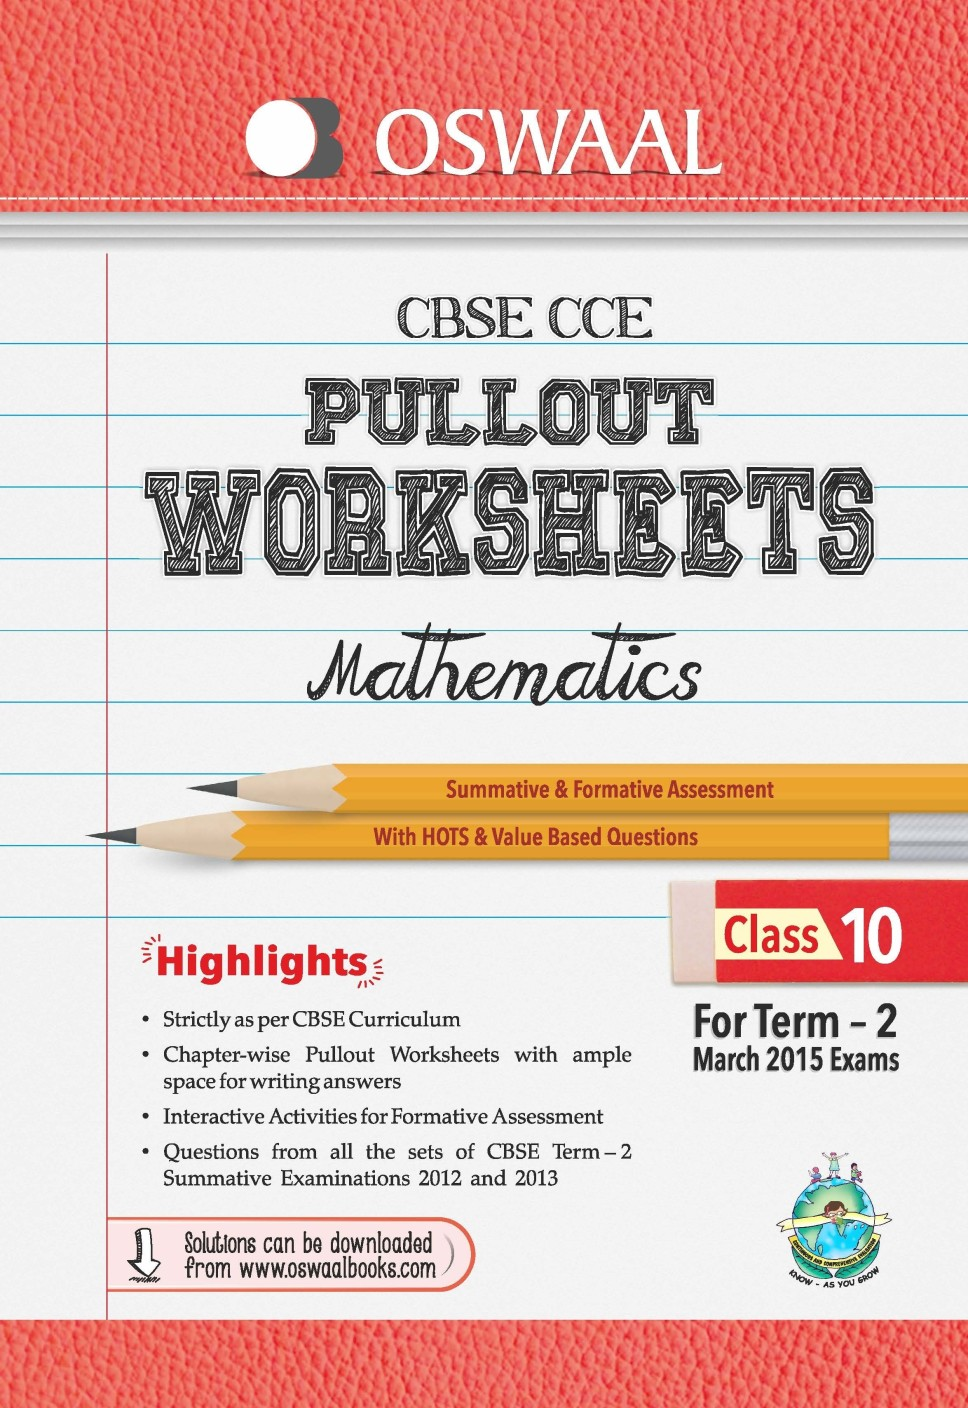 Oswaal CBSE CCE Pullout Worksheets for Term 2 Class 10 Mathematics ...